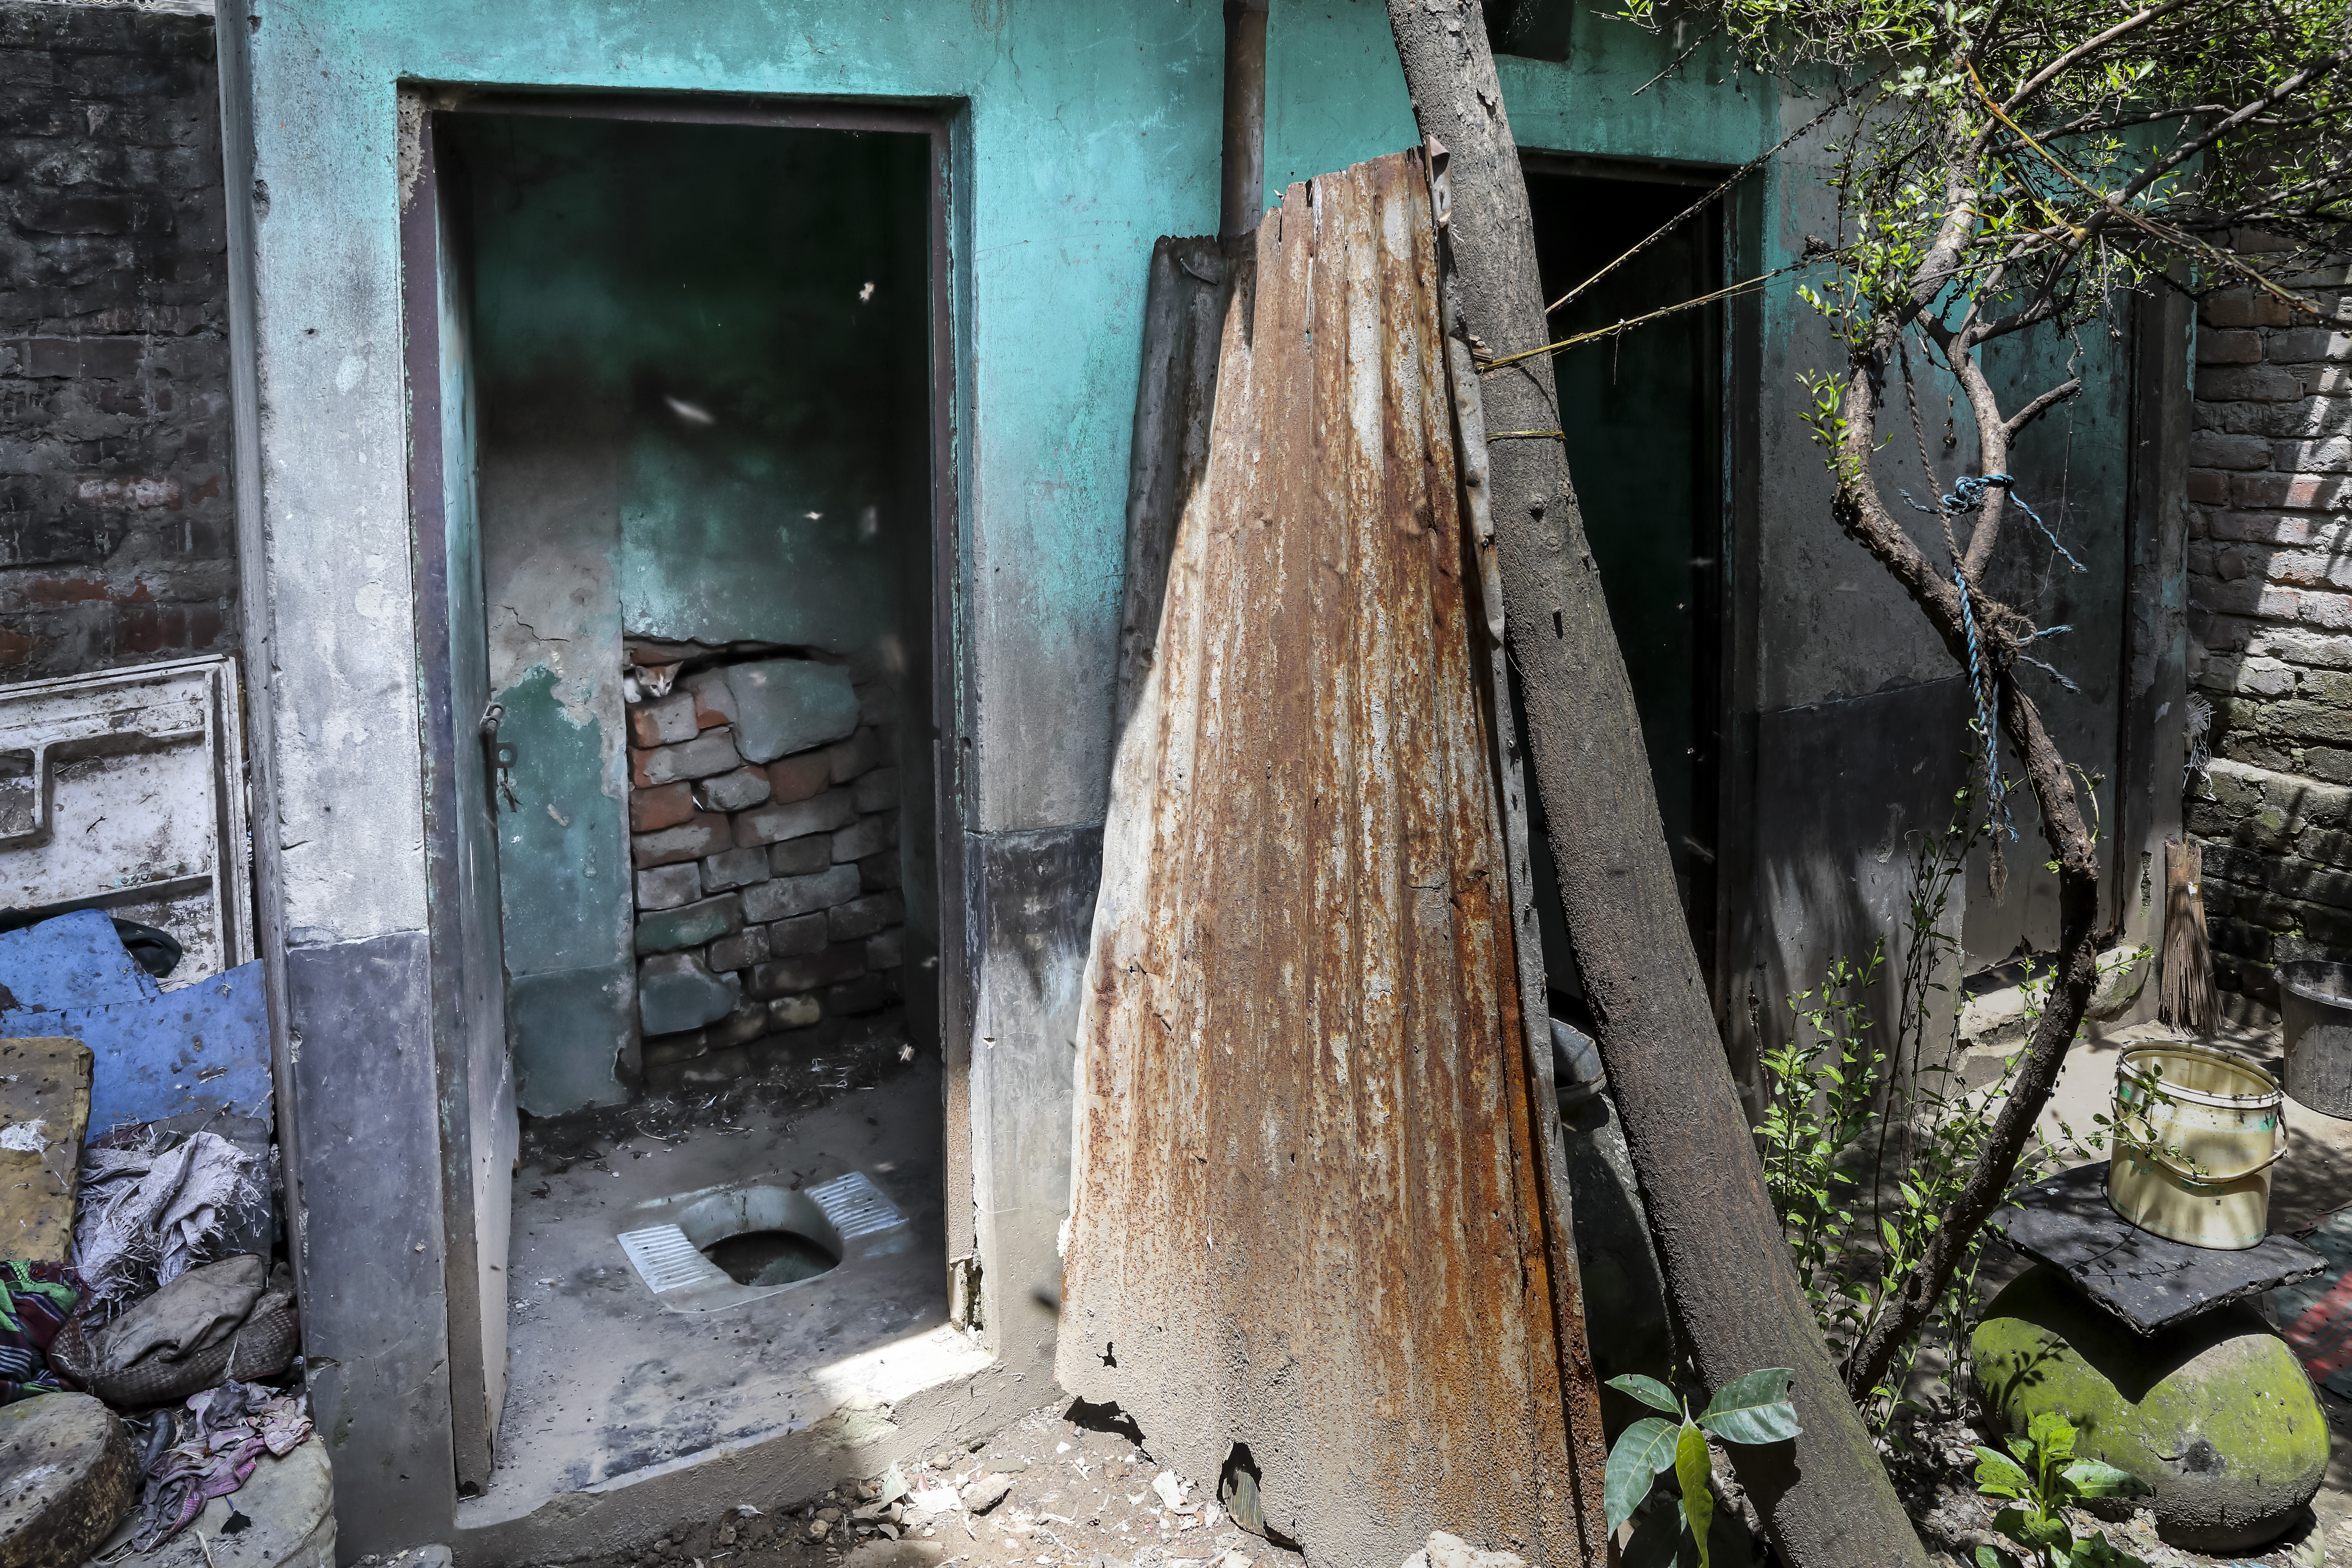 The toilet in the slum Sanjida and her family used to use